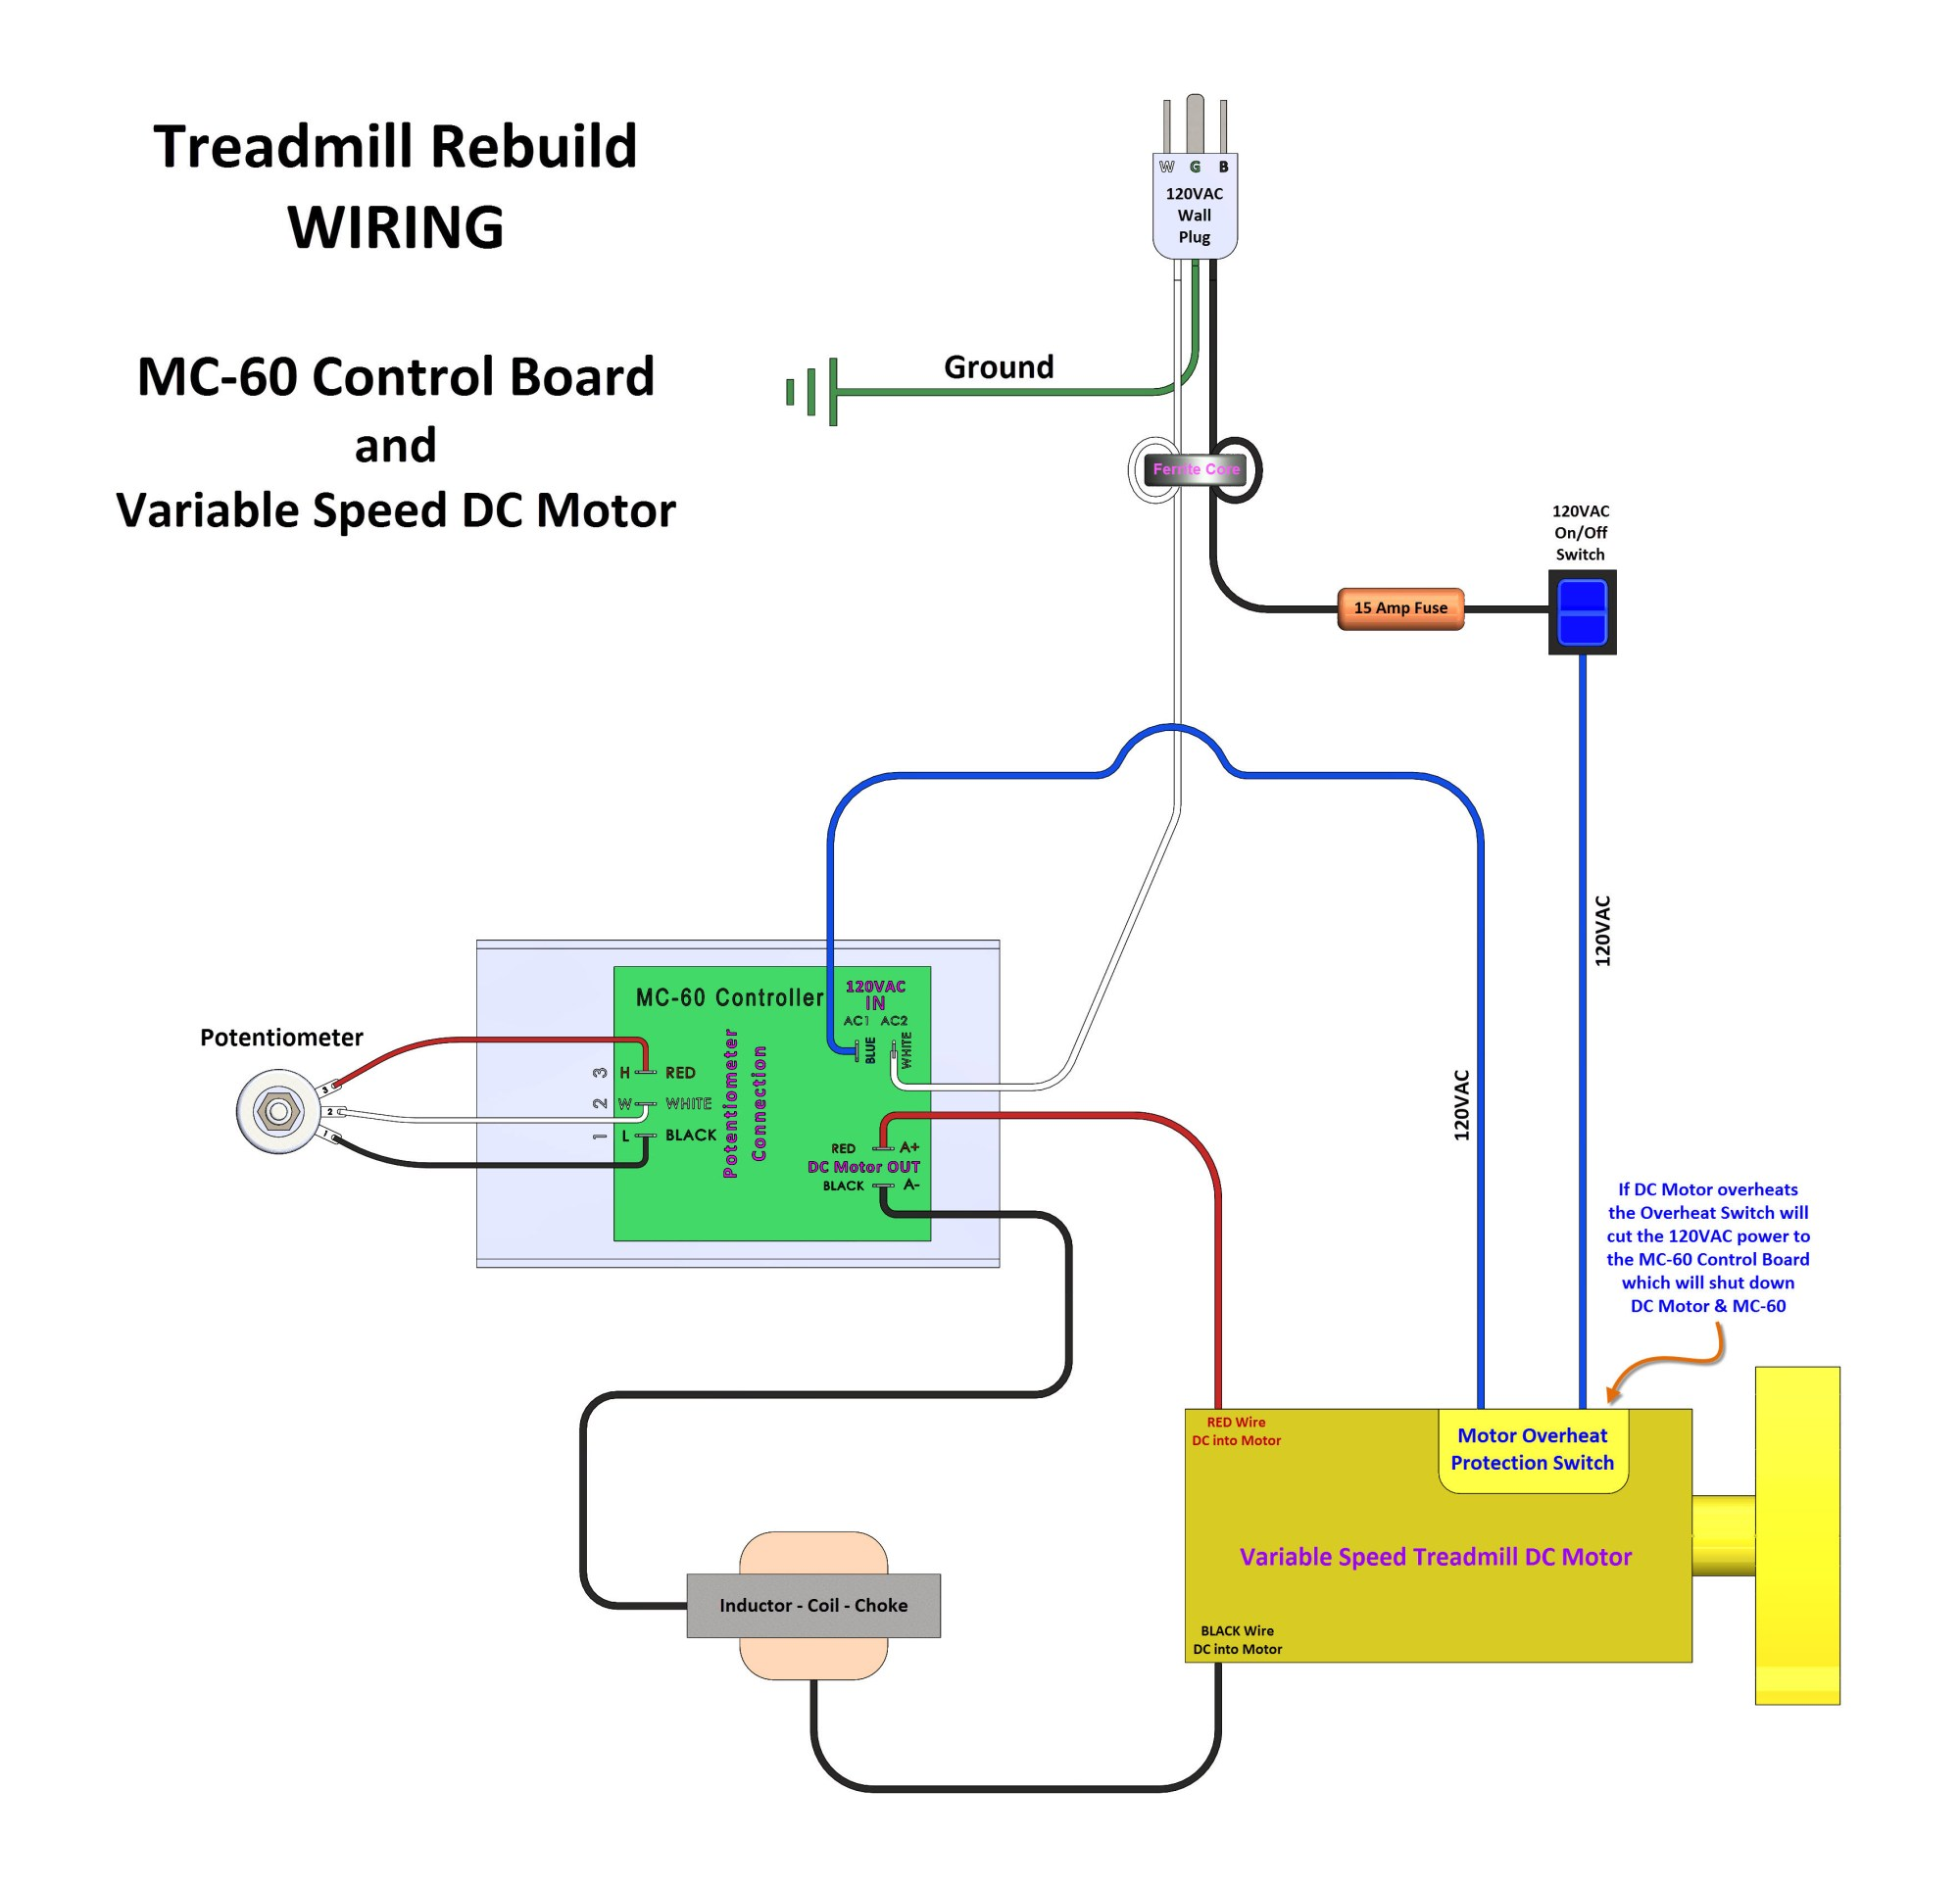 hight resolution of treadmill rebuild wiring using a mc 60 control board with dc motor